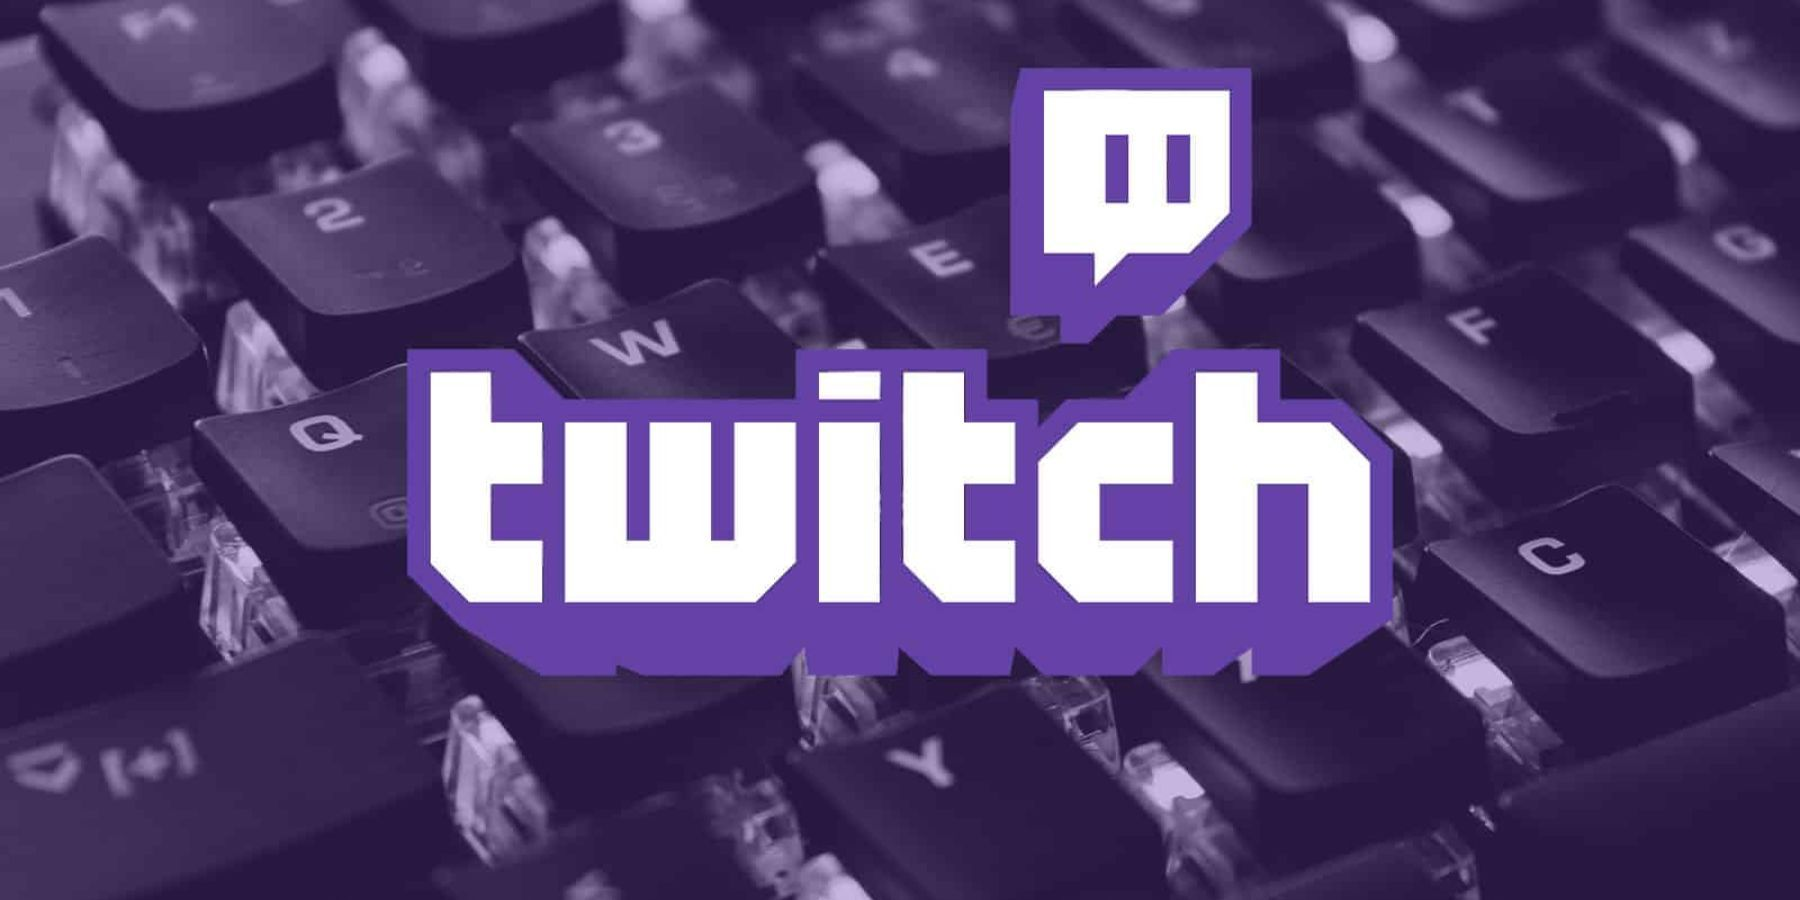 TimTheTatman's YouTube Exclusivity May Be a Sign of Things to Come at Twitch